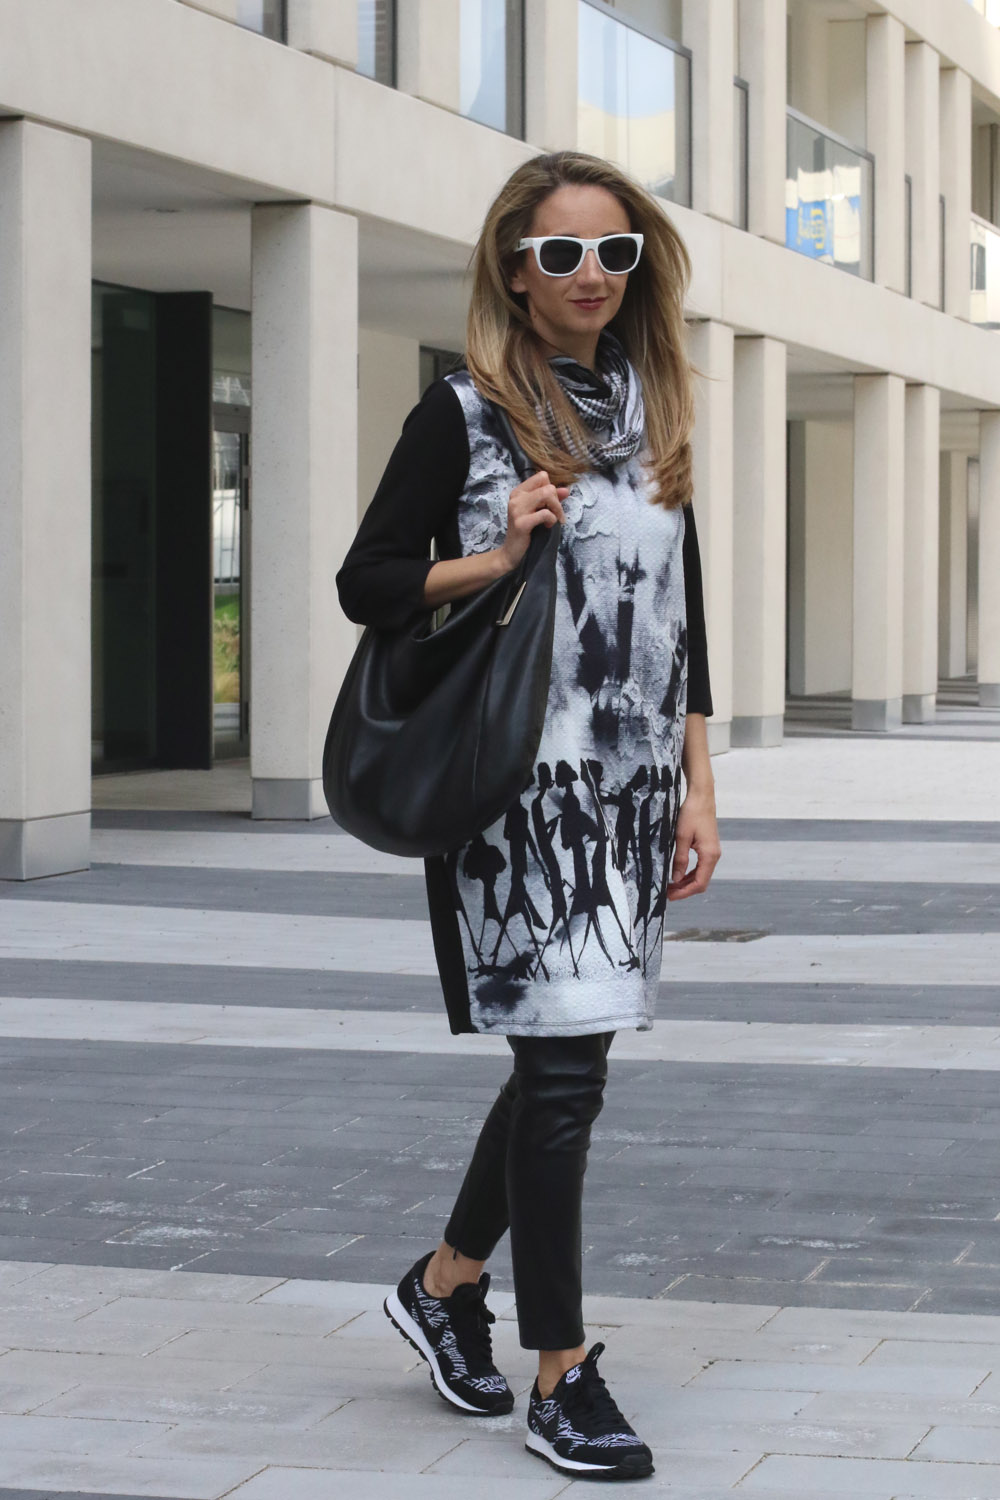 ColurClub, fashionblog, outfit dress over pants black and white